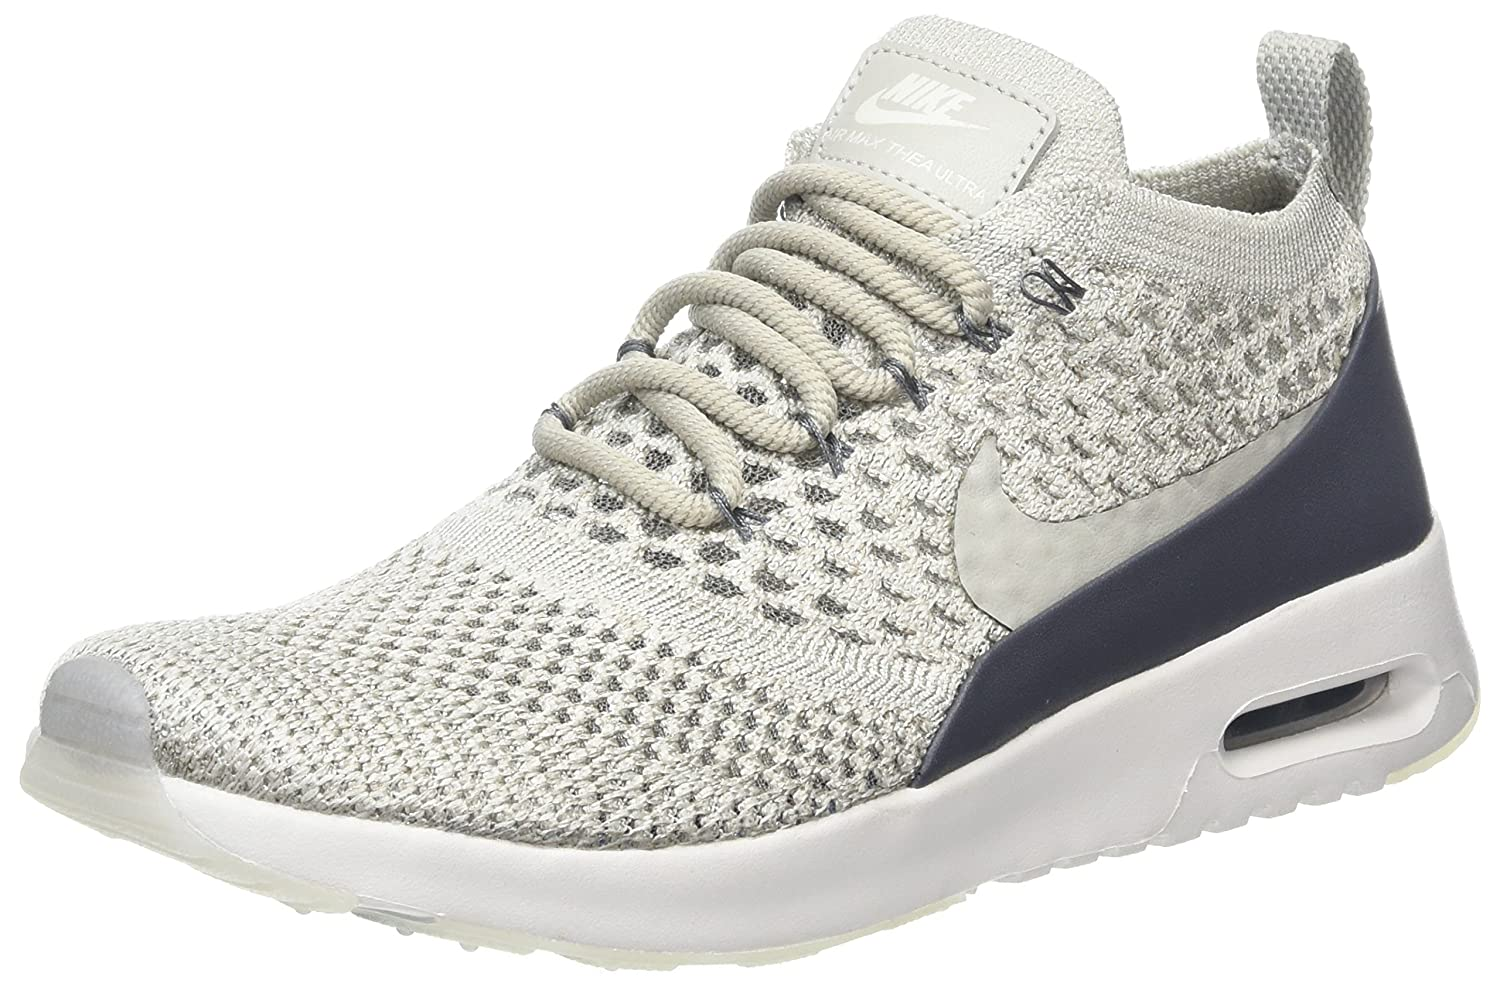 NIKE Women's Air Max Thea Ultra FK Running Shoe B0761R8VTT 9 B(M) US|Pale Grey/Pale Grey-dark Grey